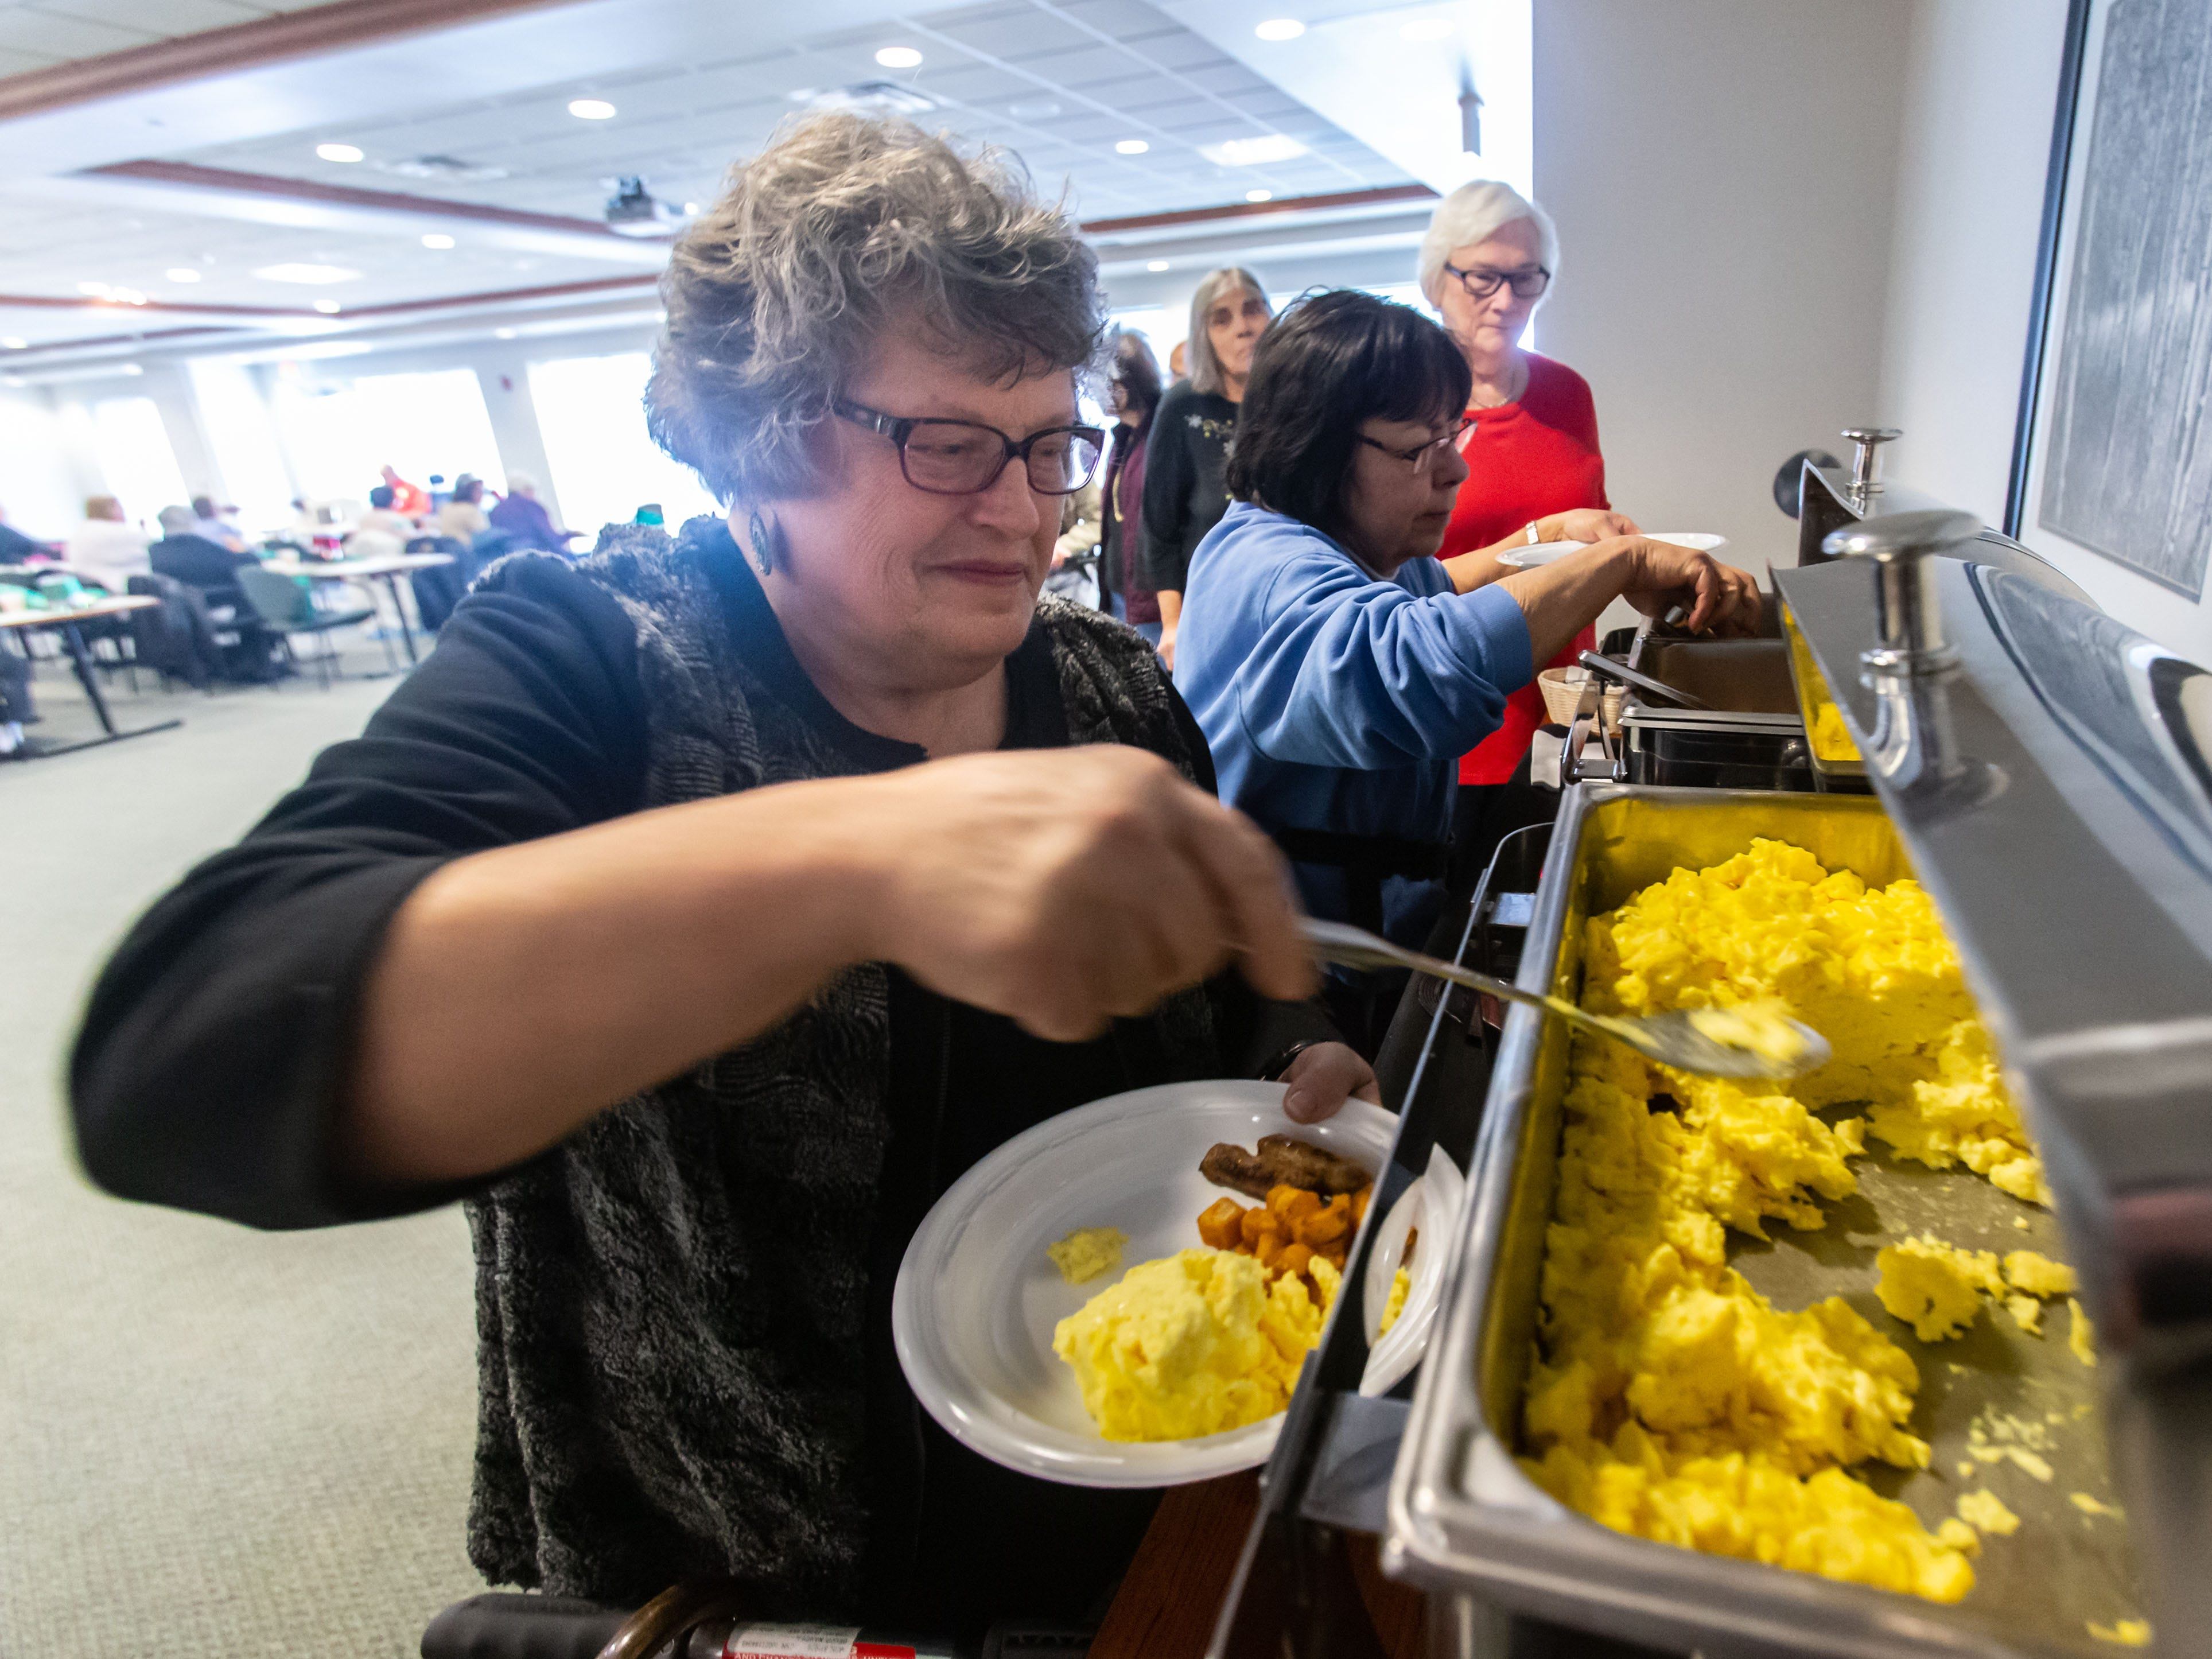 Nancy Beder of Waukesha fills a plate at the self-serve buffet during the free monthly senior breakfast club at Aurora Health Care in Summit on Tuesday, Jan. 1, 2019. Senior Breakfast Club is held from 8 to 10 a.m. on the first Tuesday of each month and is open to seniors and their families. For more info please call Trish Golden at 262-434-1248.